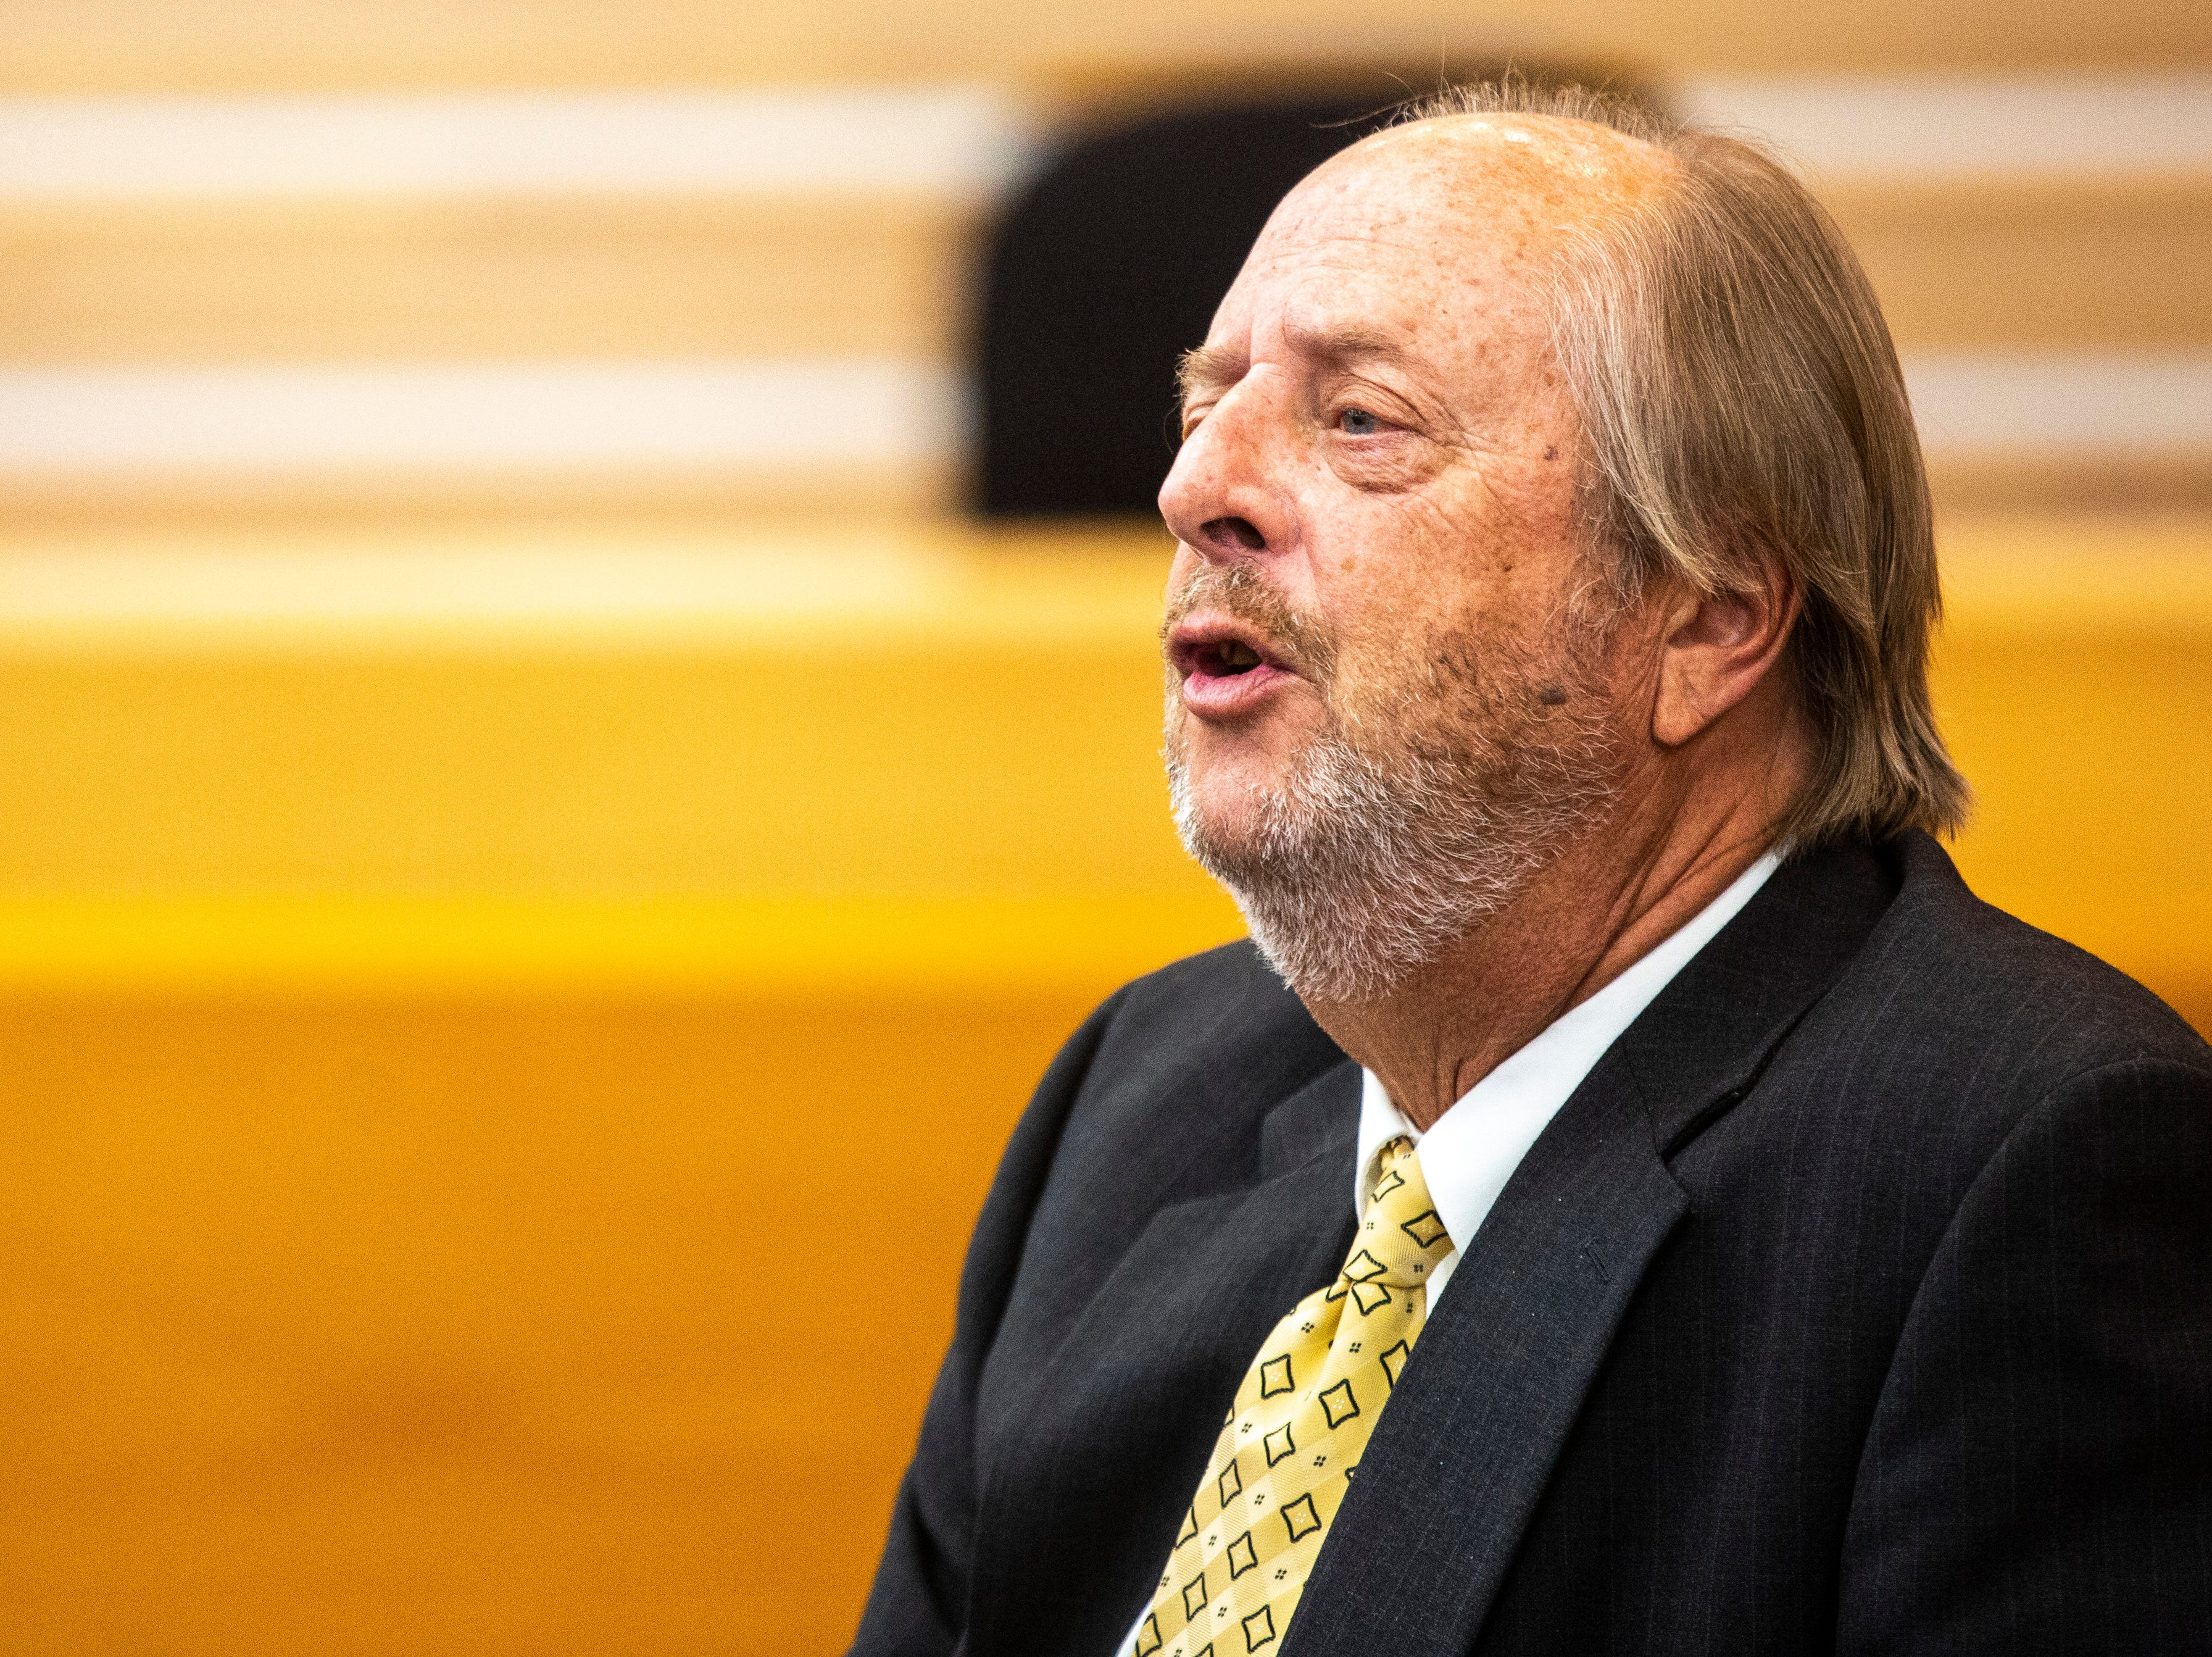 Former Iowa Supreme Court Justice David L. Baker, speaks during a panel regarding the Varnum v. Brien Iowa Supreme Court decision, Thursday, April 18, 2019, in the Boyd Law Building on the University of Iowa campus in Iowa City, Iowa.